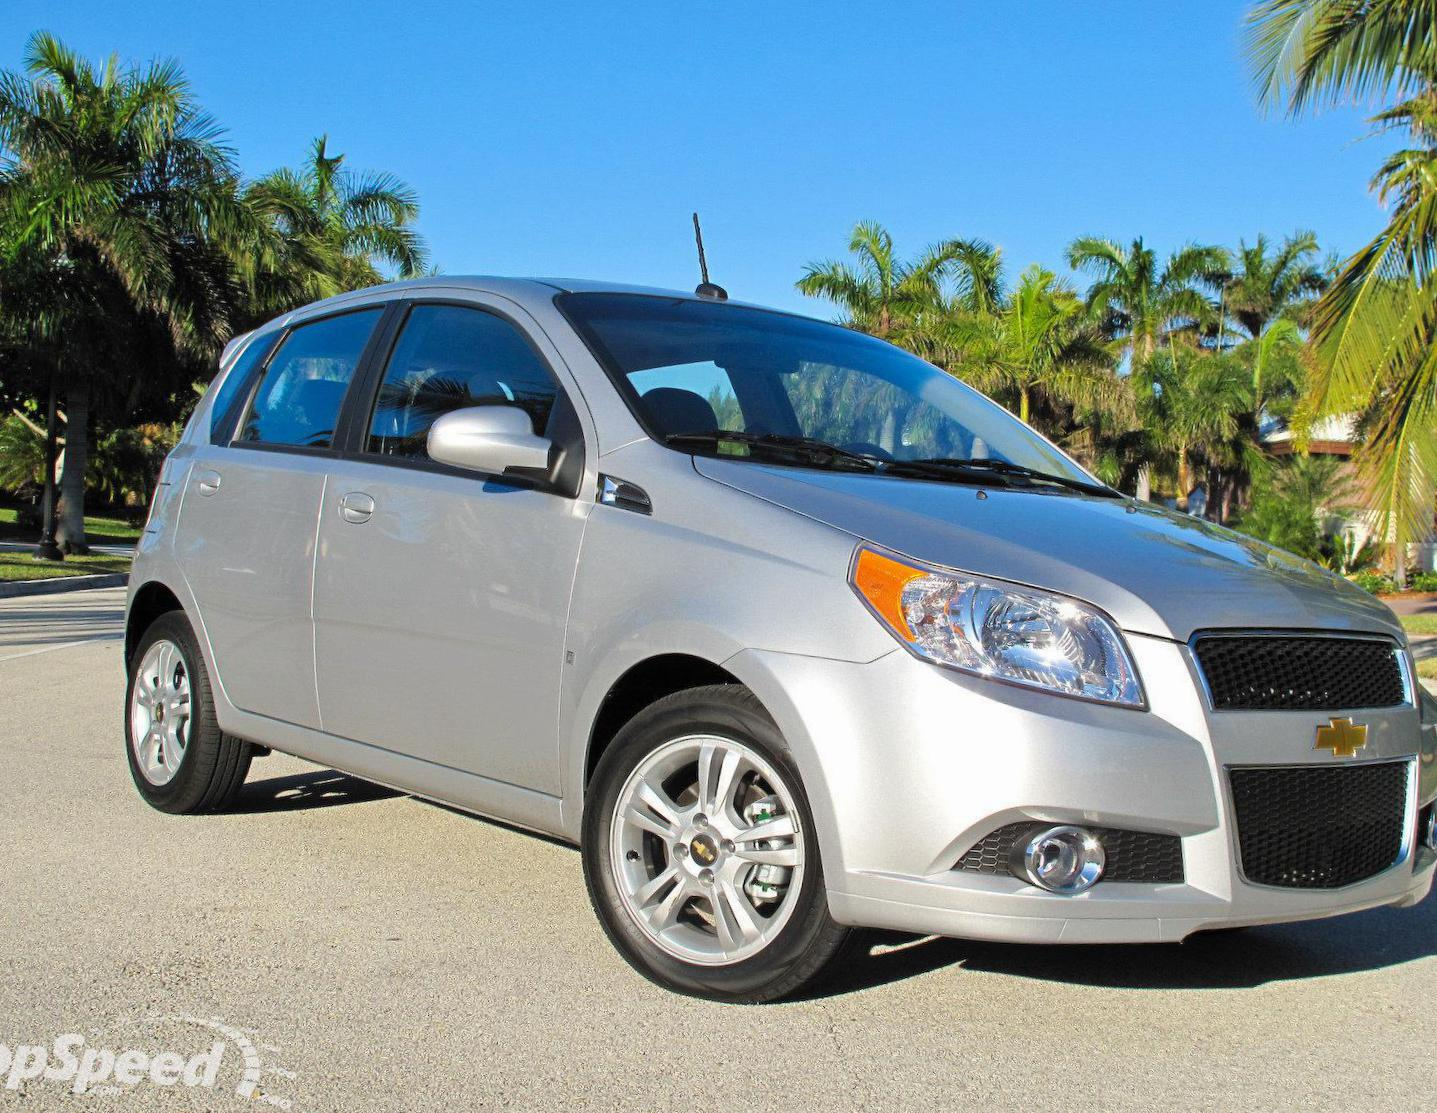 Chevrolet Aveo Hatchback 5d review 2013